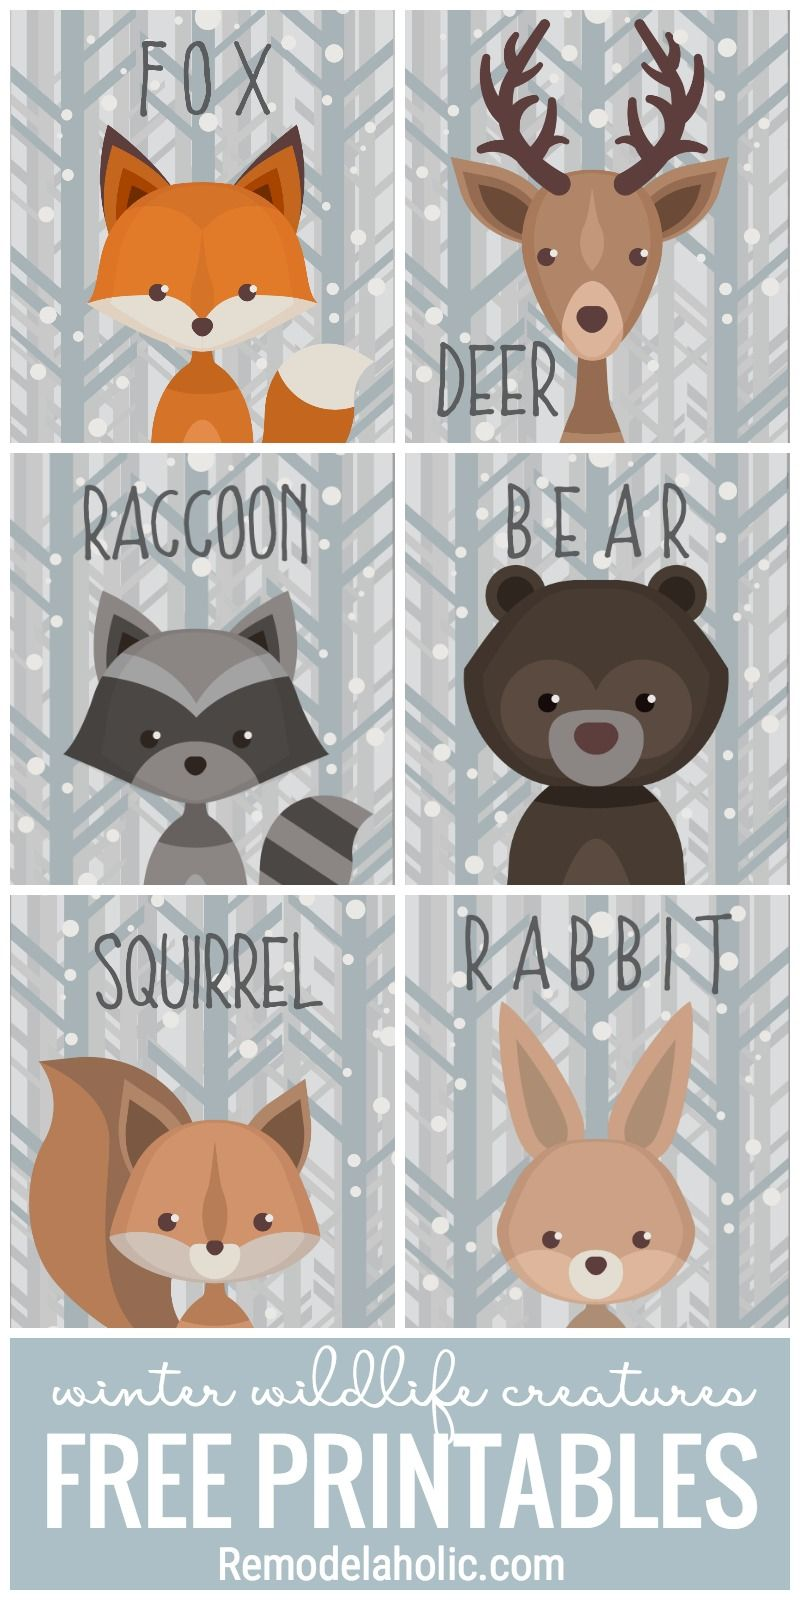 image relating to Free Printable Woodland Animal Templates named This totally free mounted of printable wintertime woodland creature artwork is